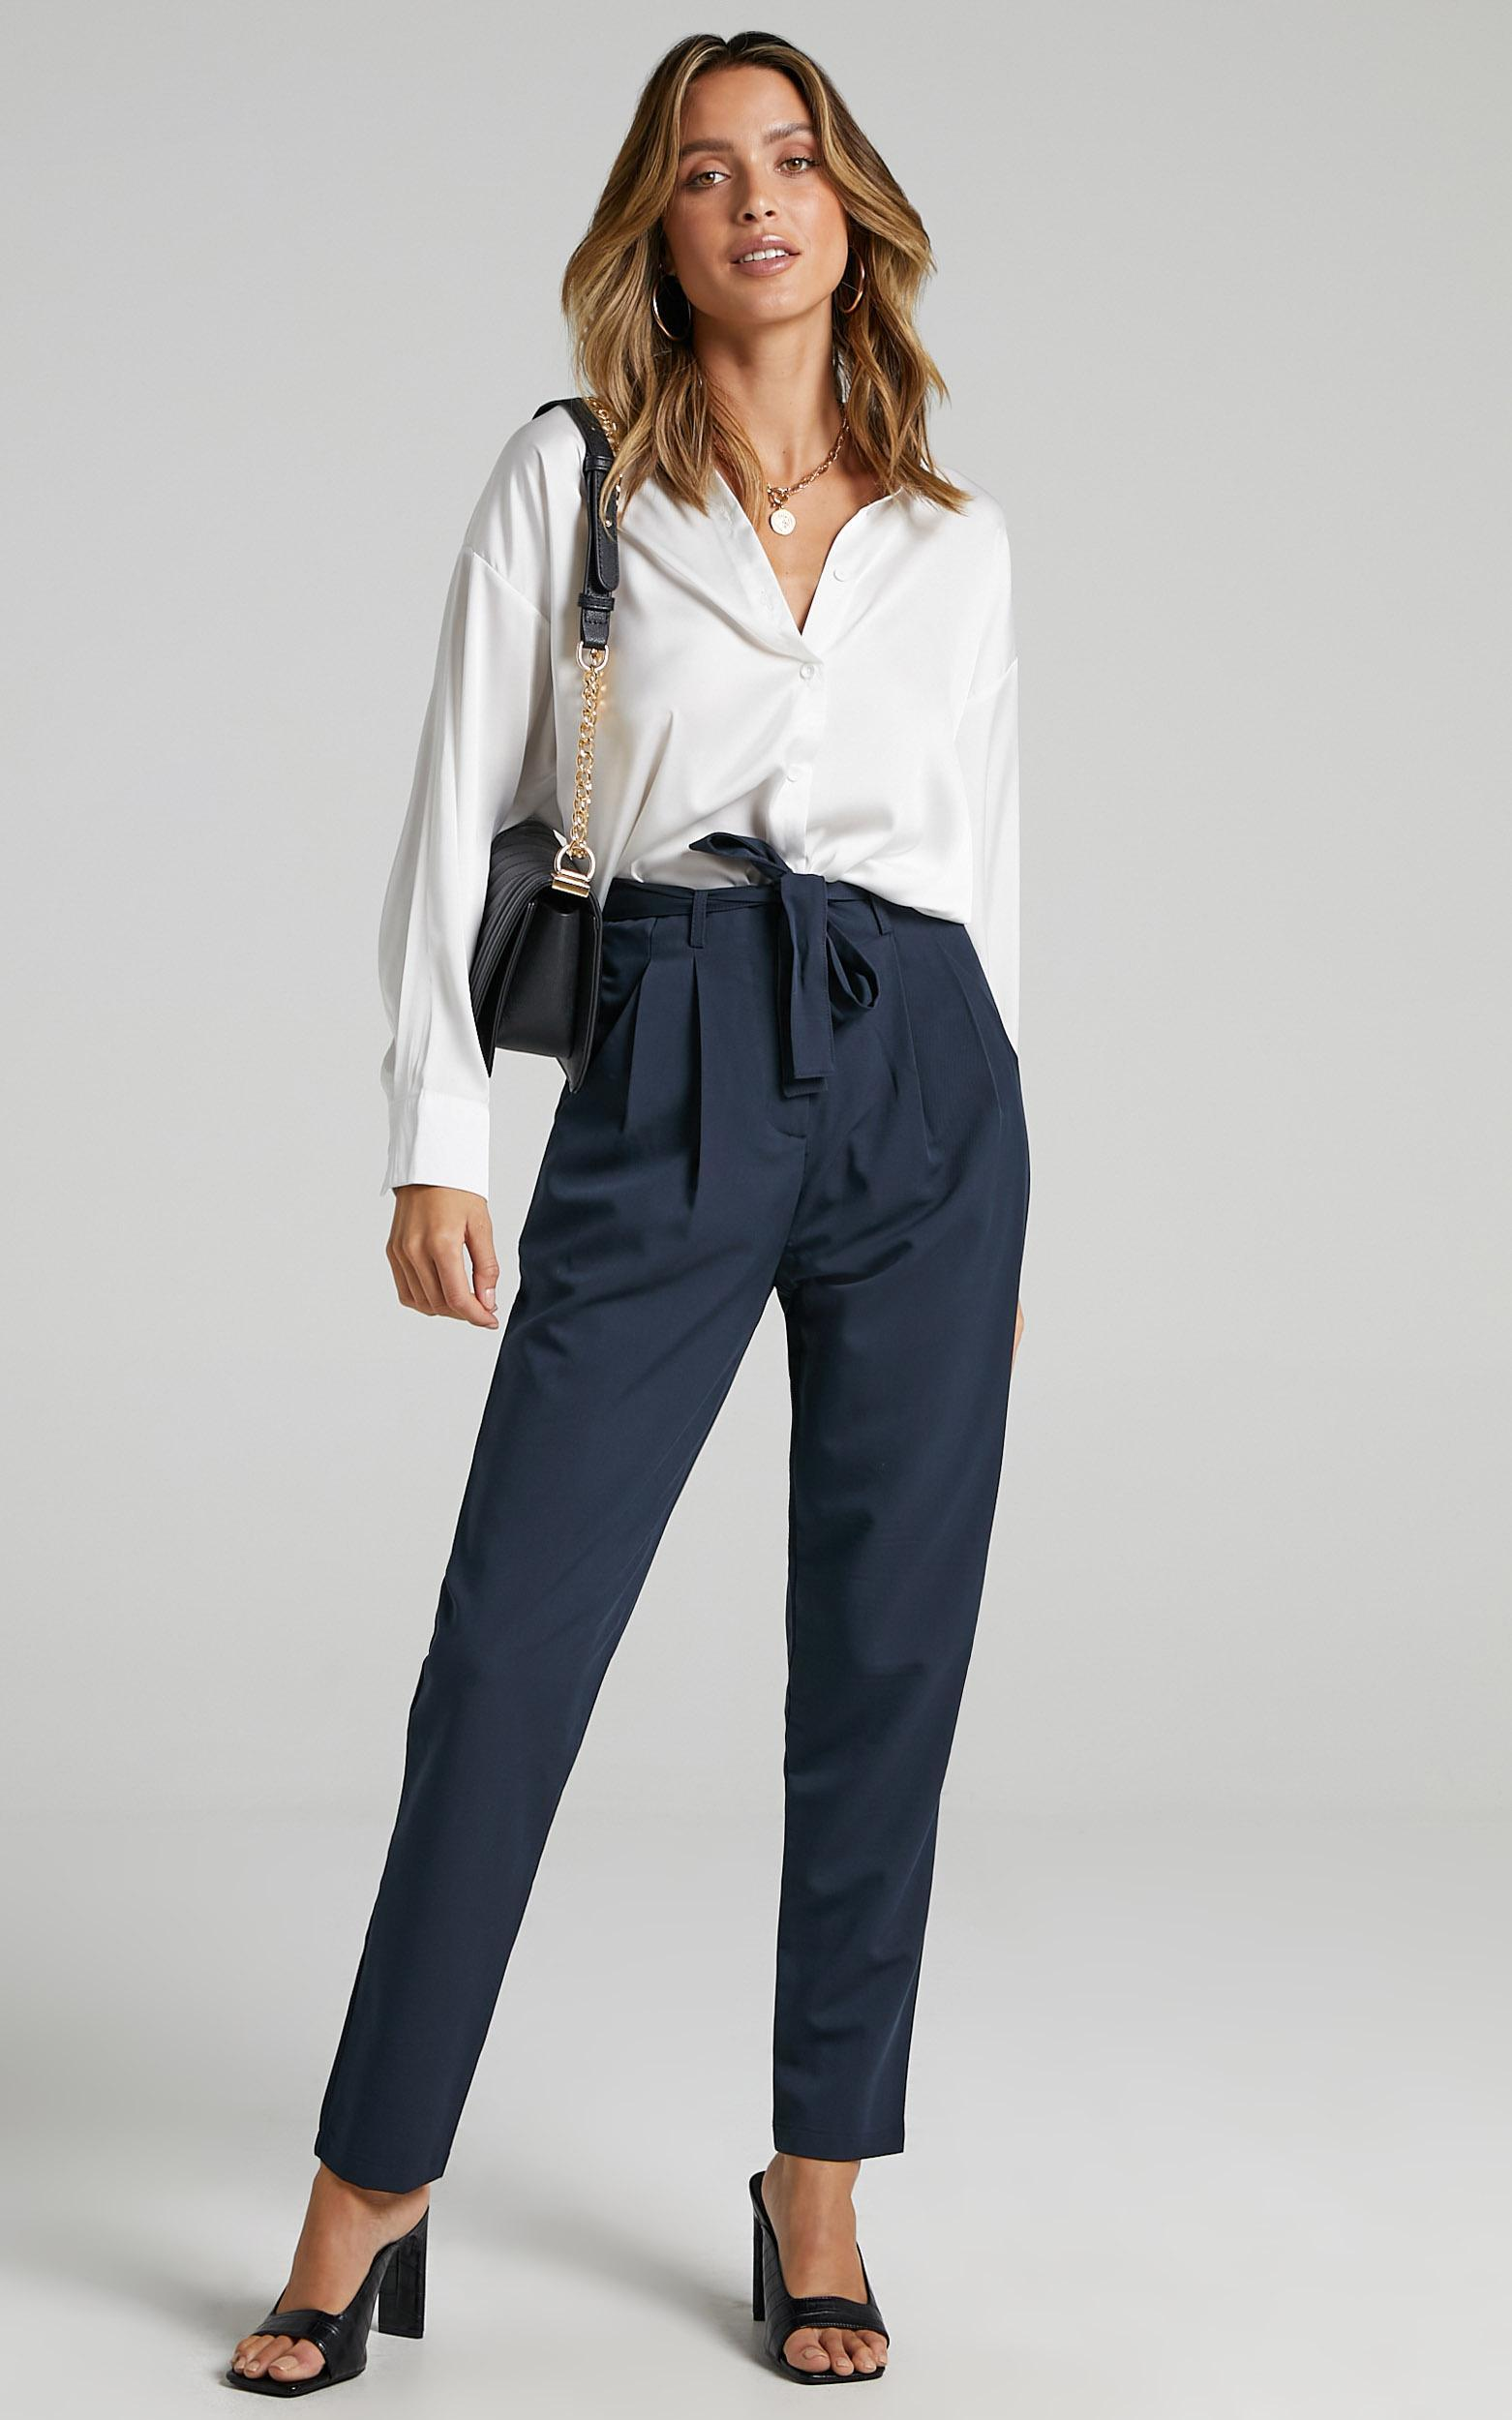 Building My Empire Pants in Navy - 06, NVY2, hi-res image number null